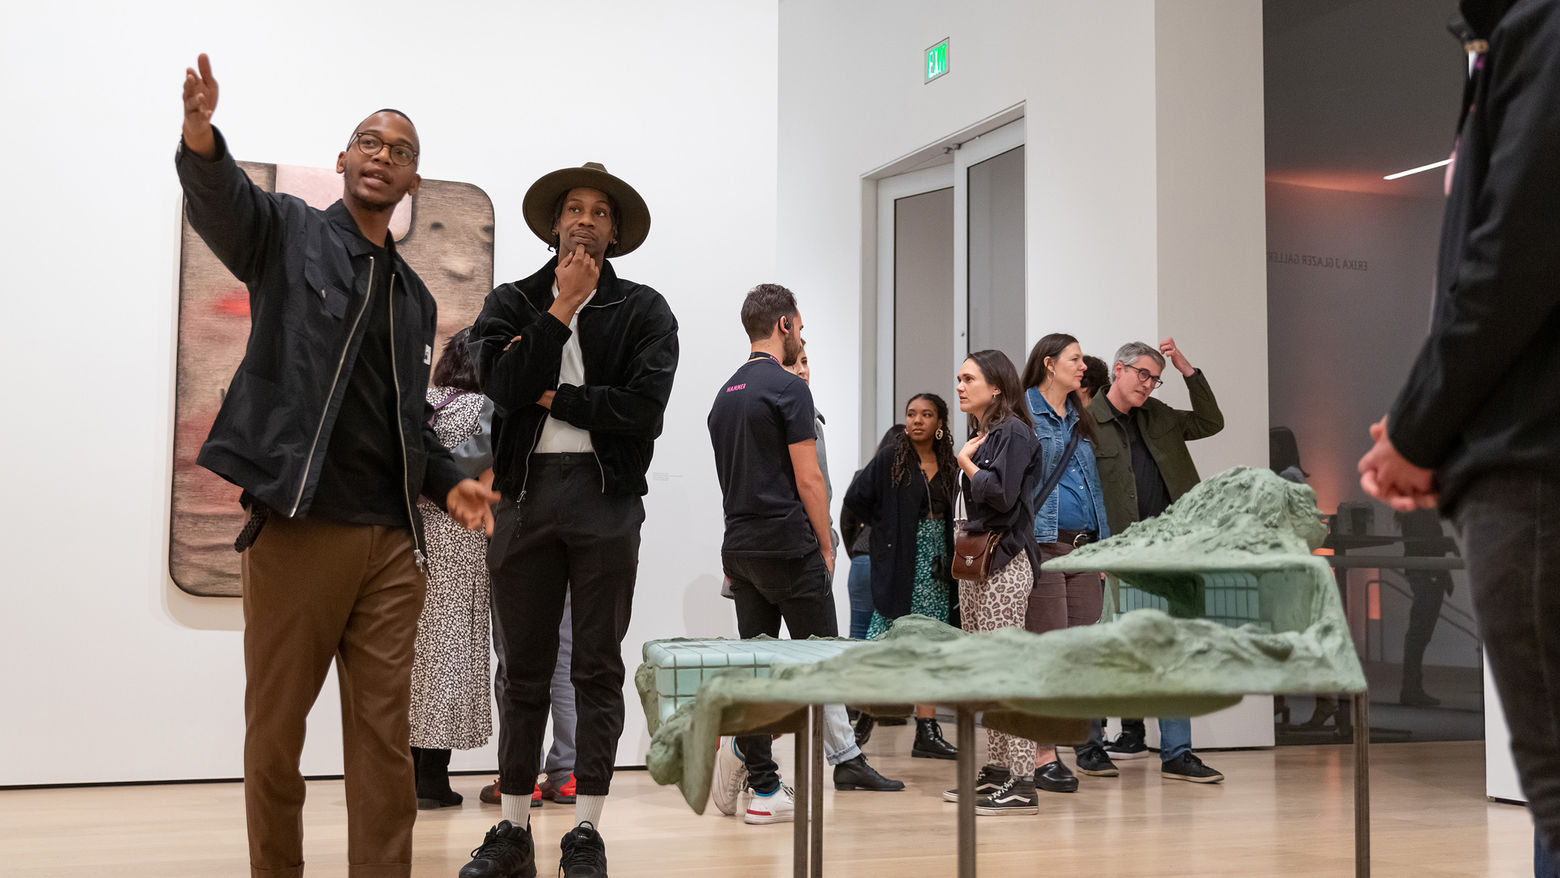 Two young man stand in a gallery next to a sculpture among a crowd